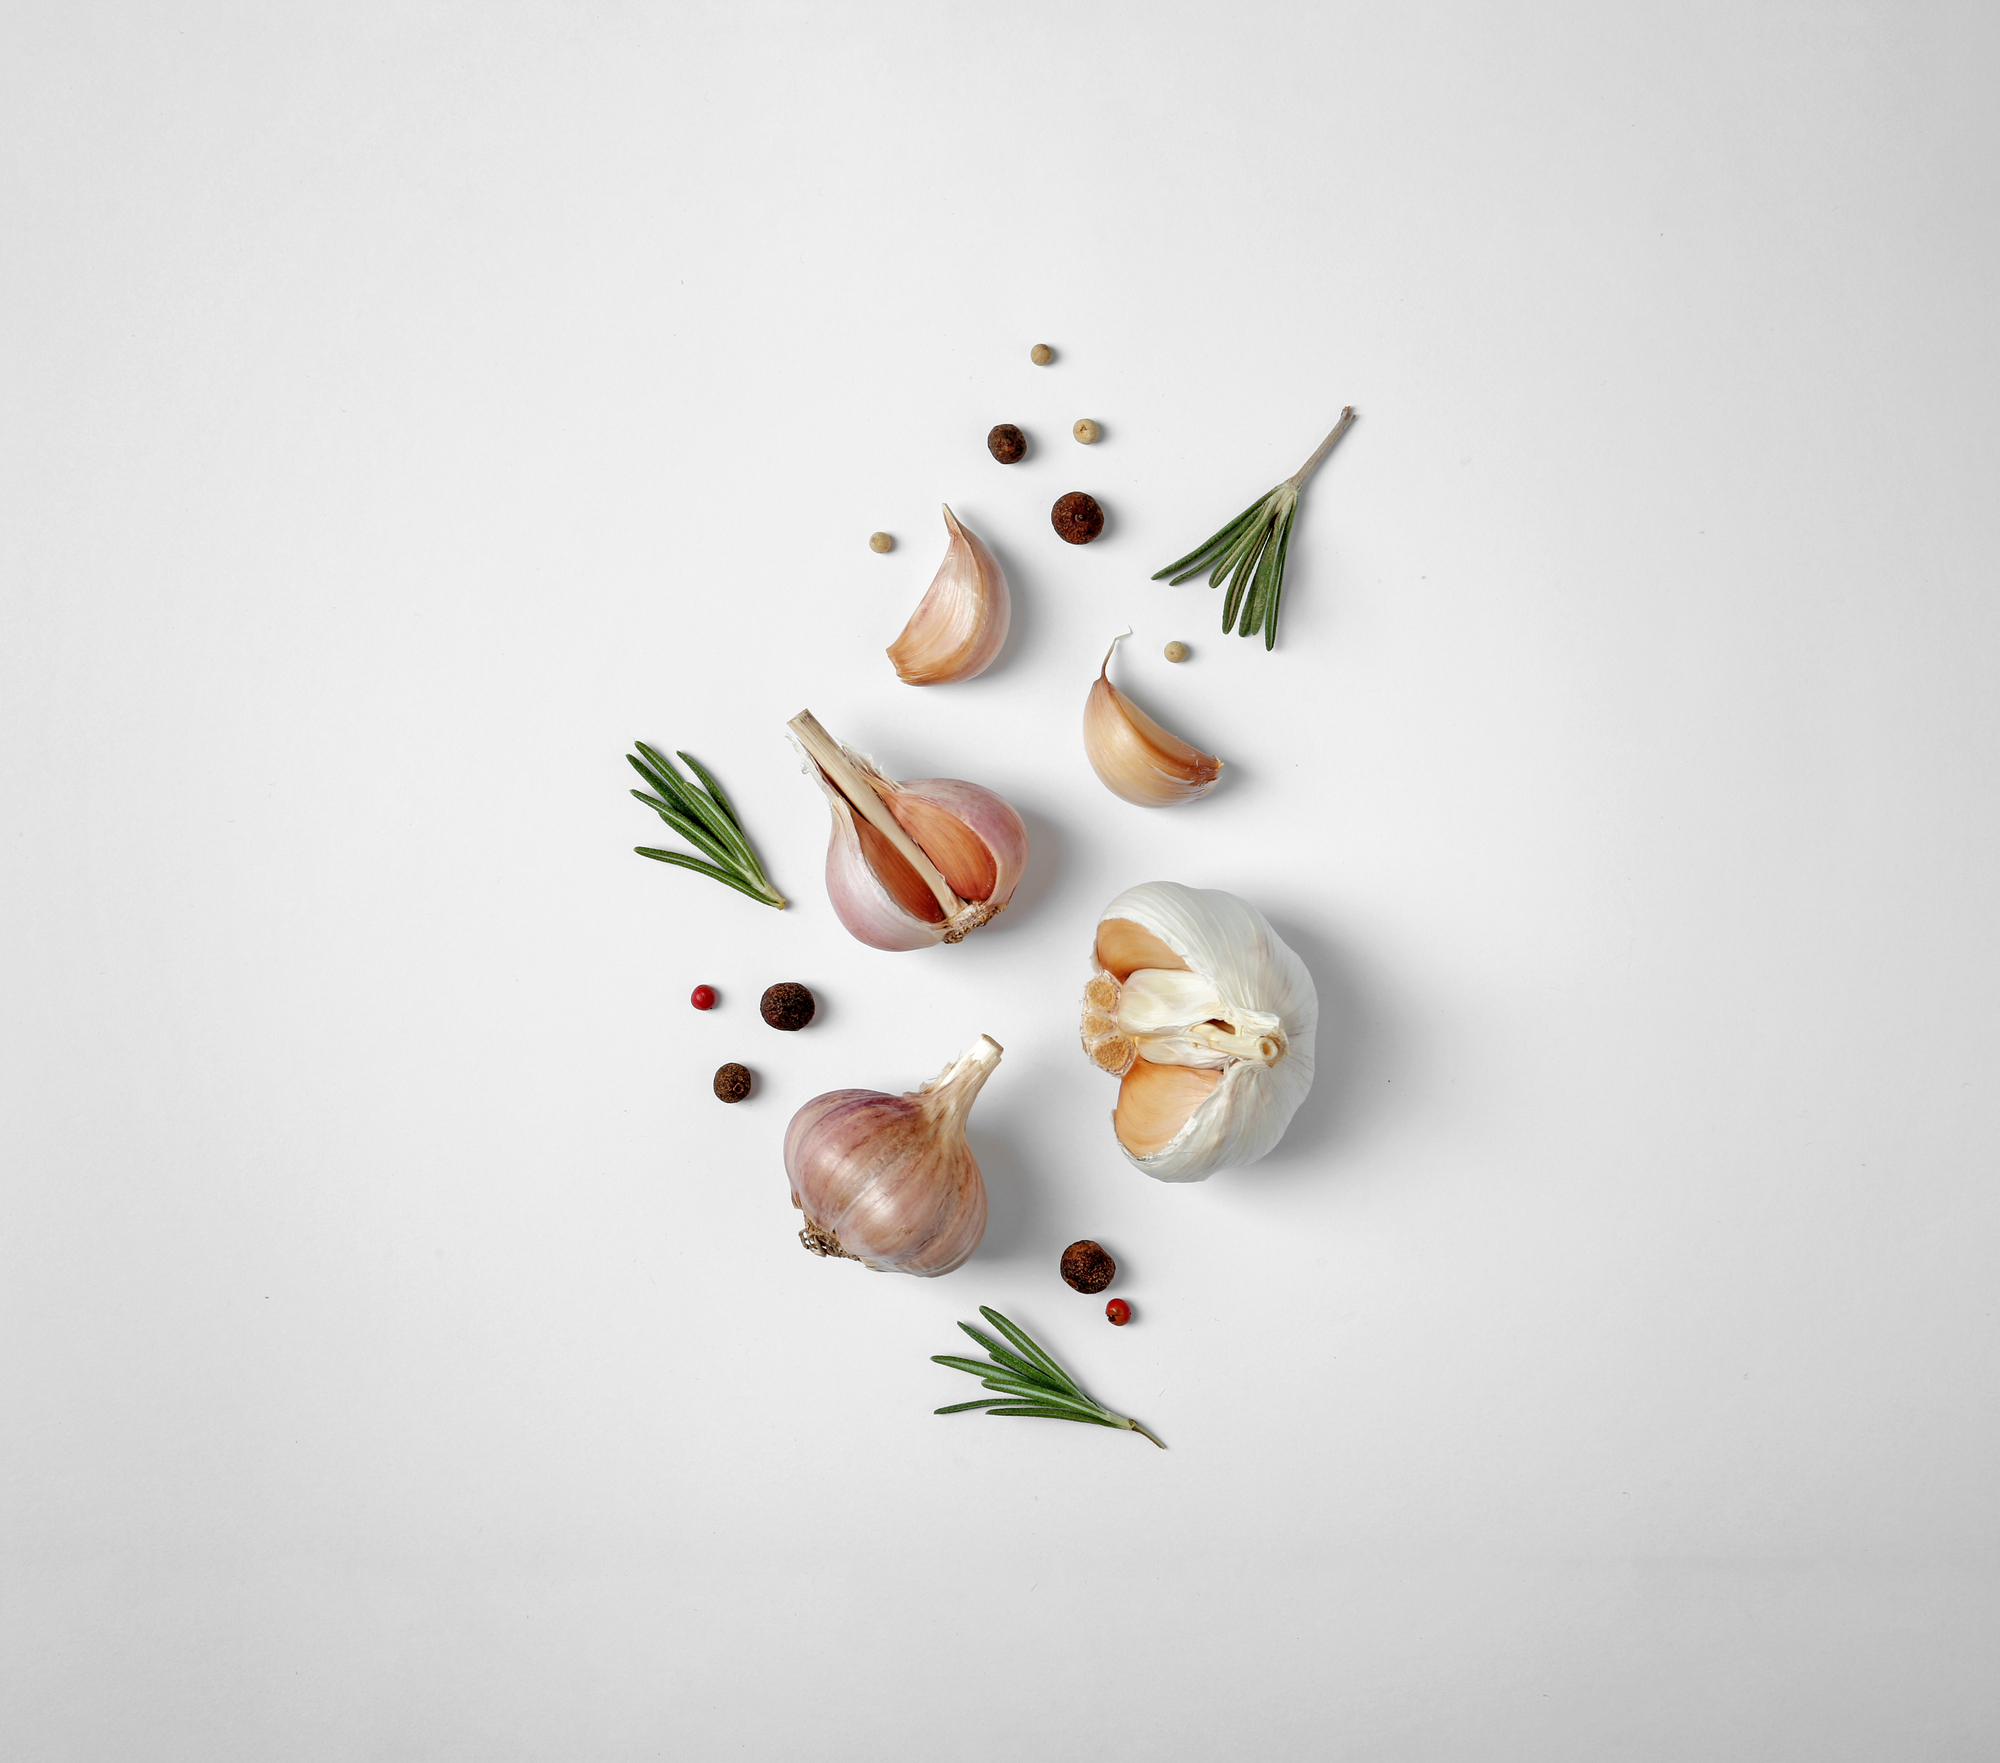 Composition with garlic, pepper and rosemary on white background